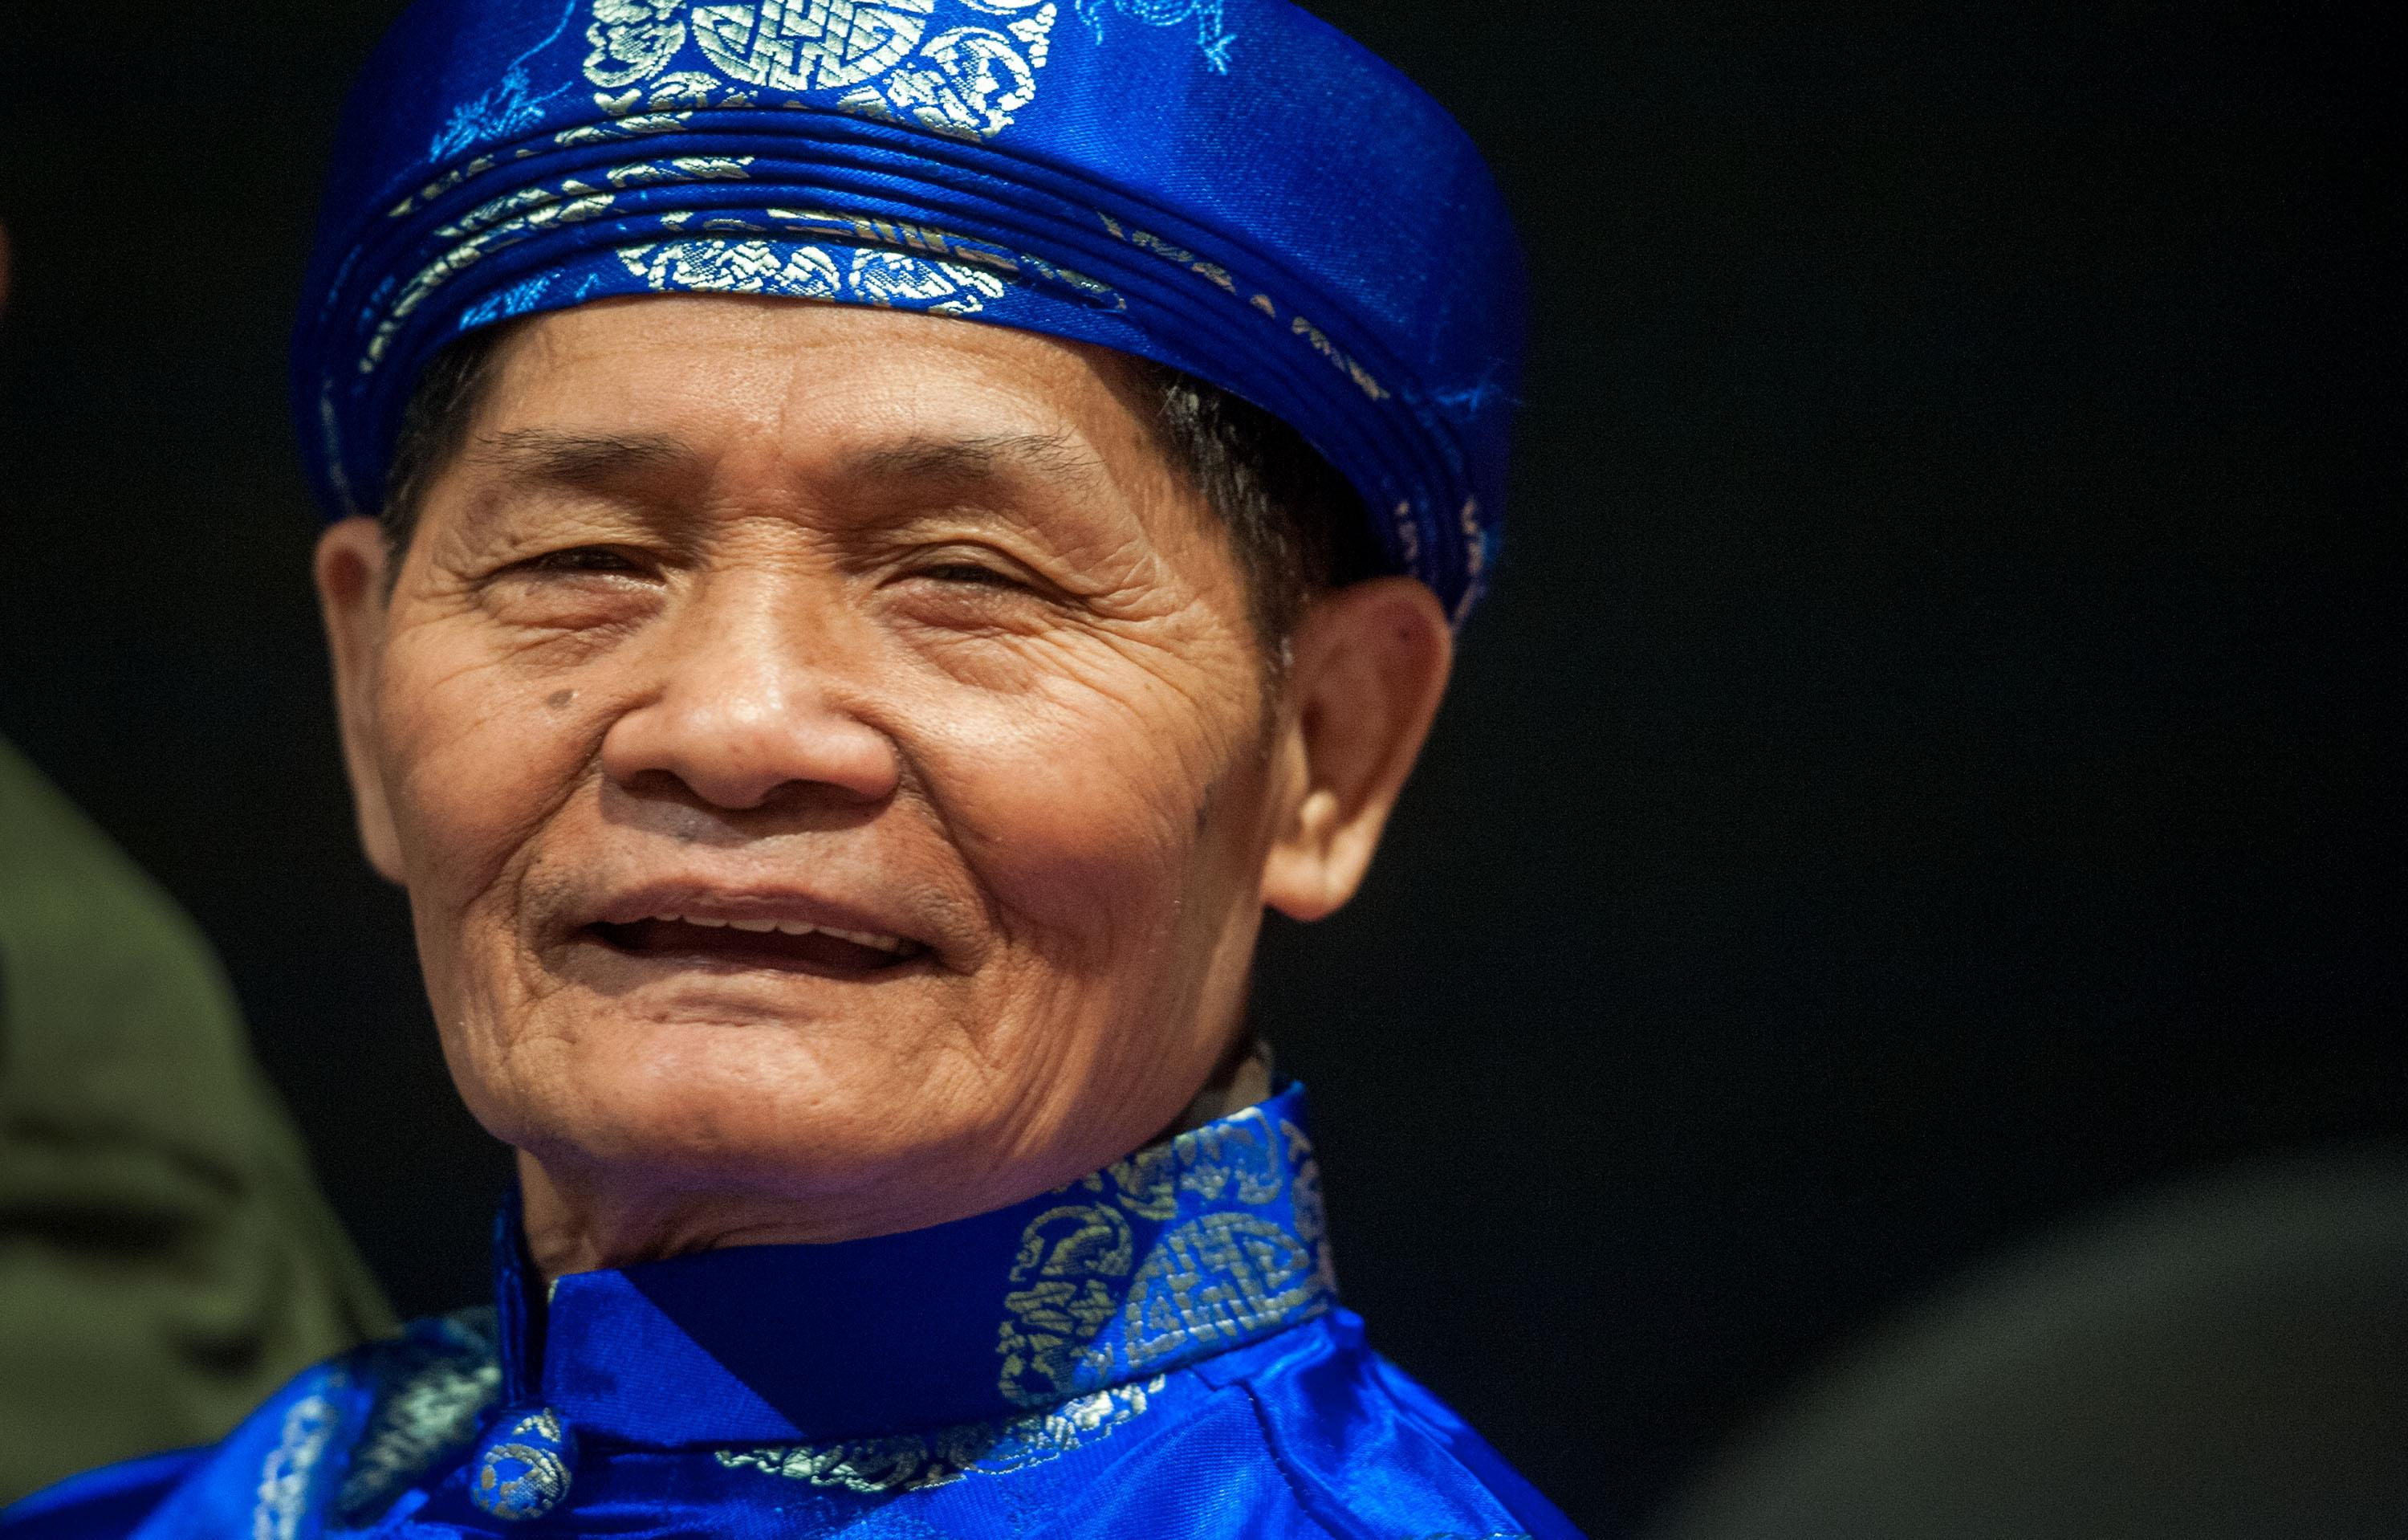 Lam Nguyen Wears Traditional Men S Ceremonial Clothing During Vietnamese Heritage Day At Genesis Event Center In